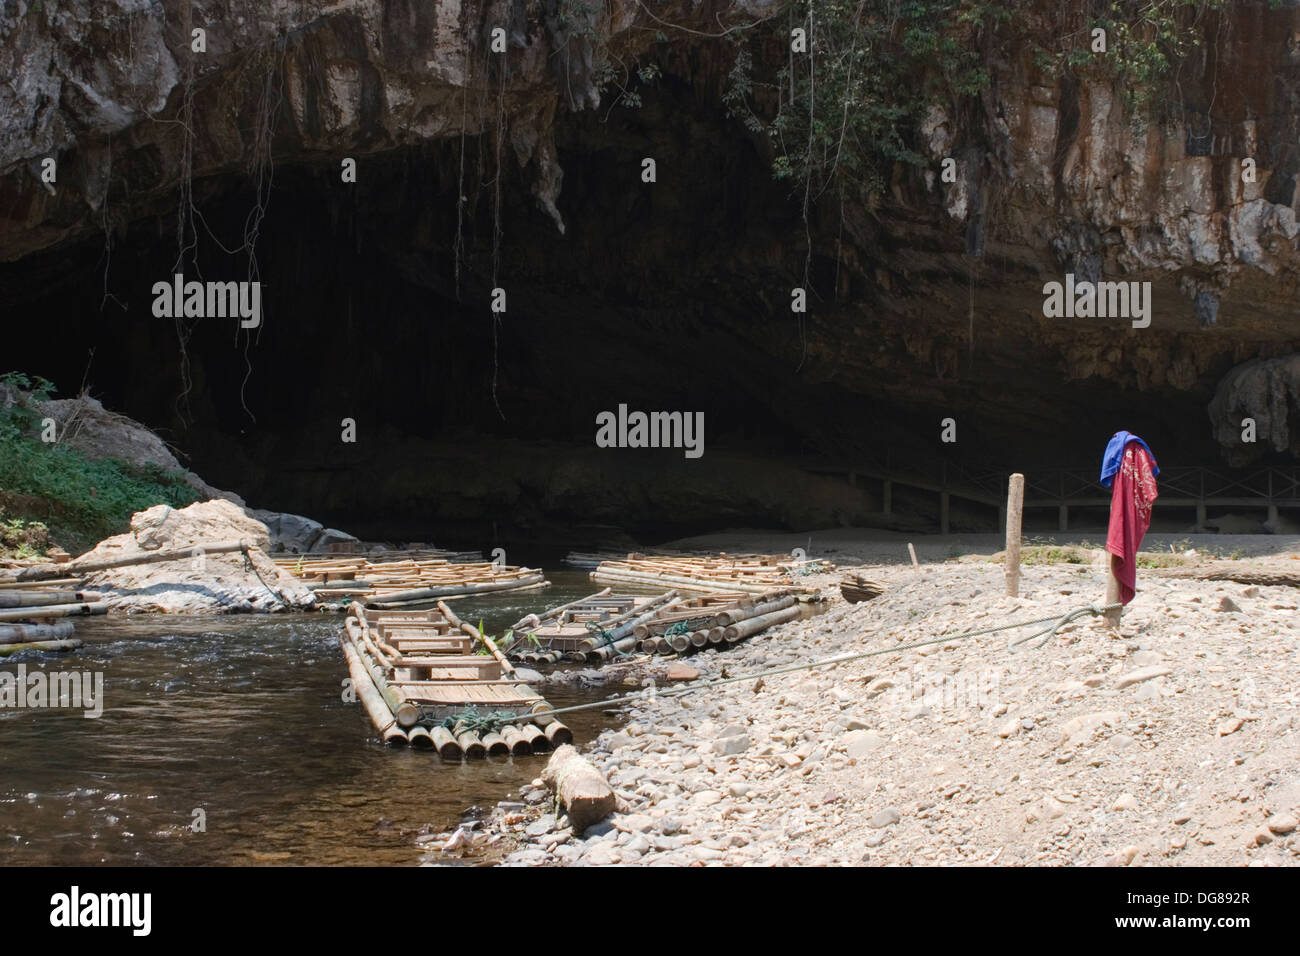 Bamboo rafts are floating on the Nam Lang River at the entrance to ...